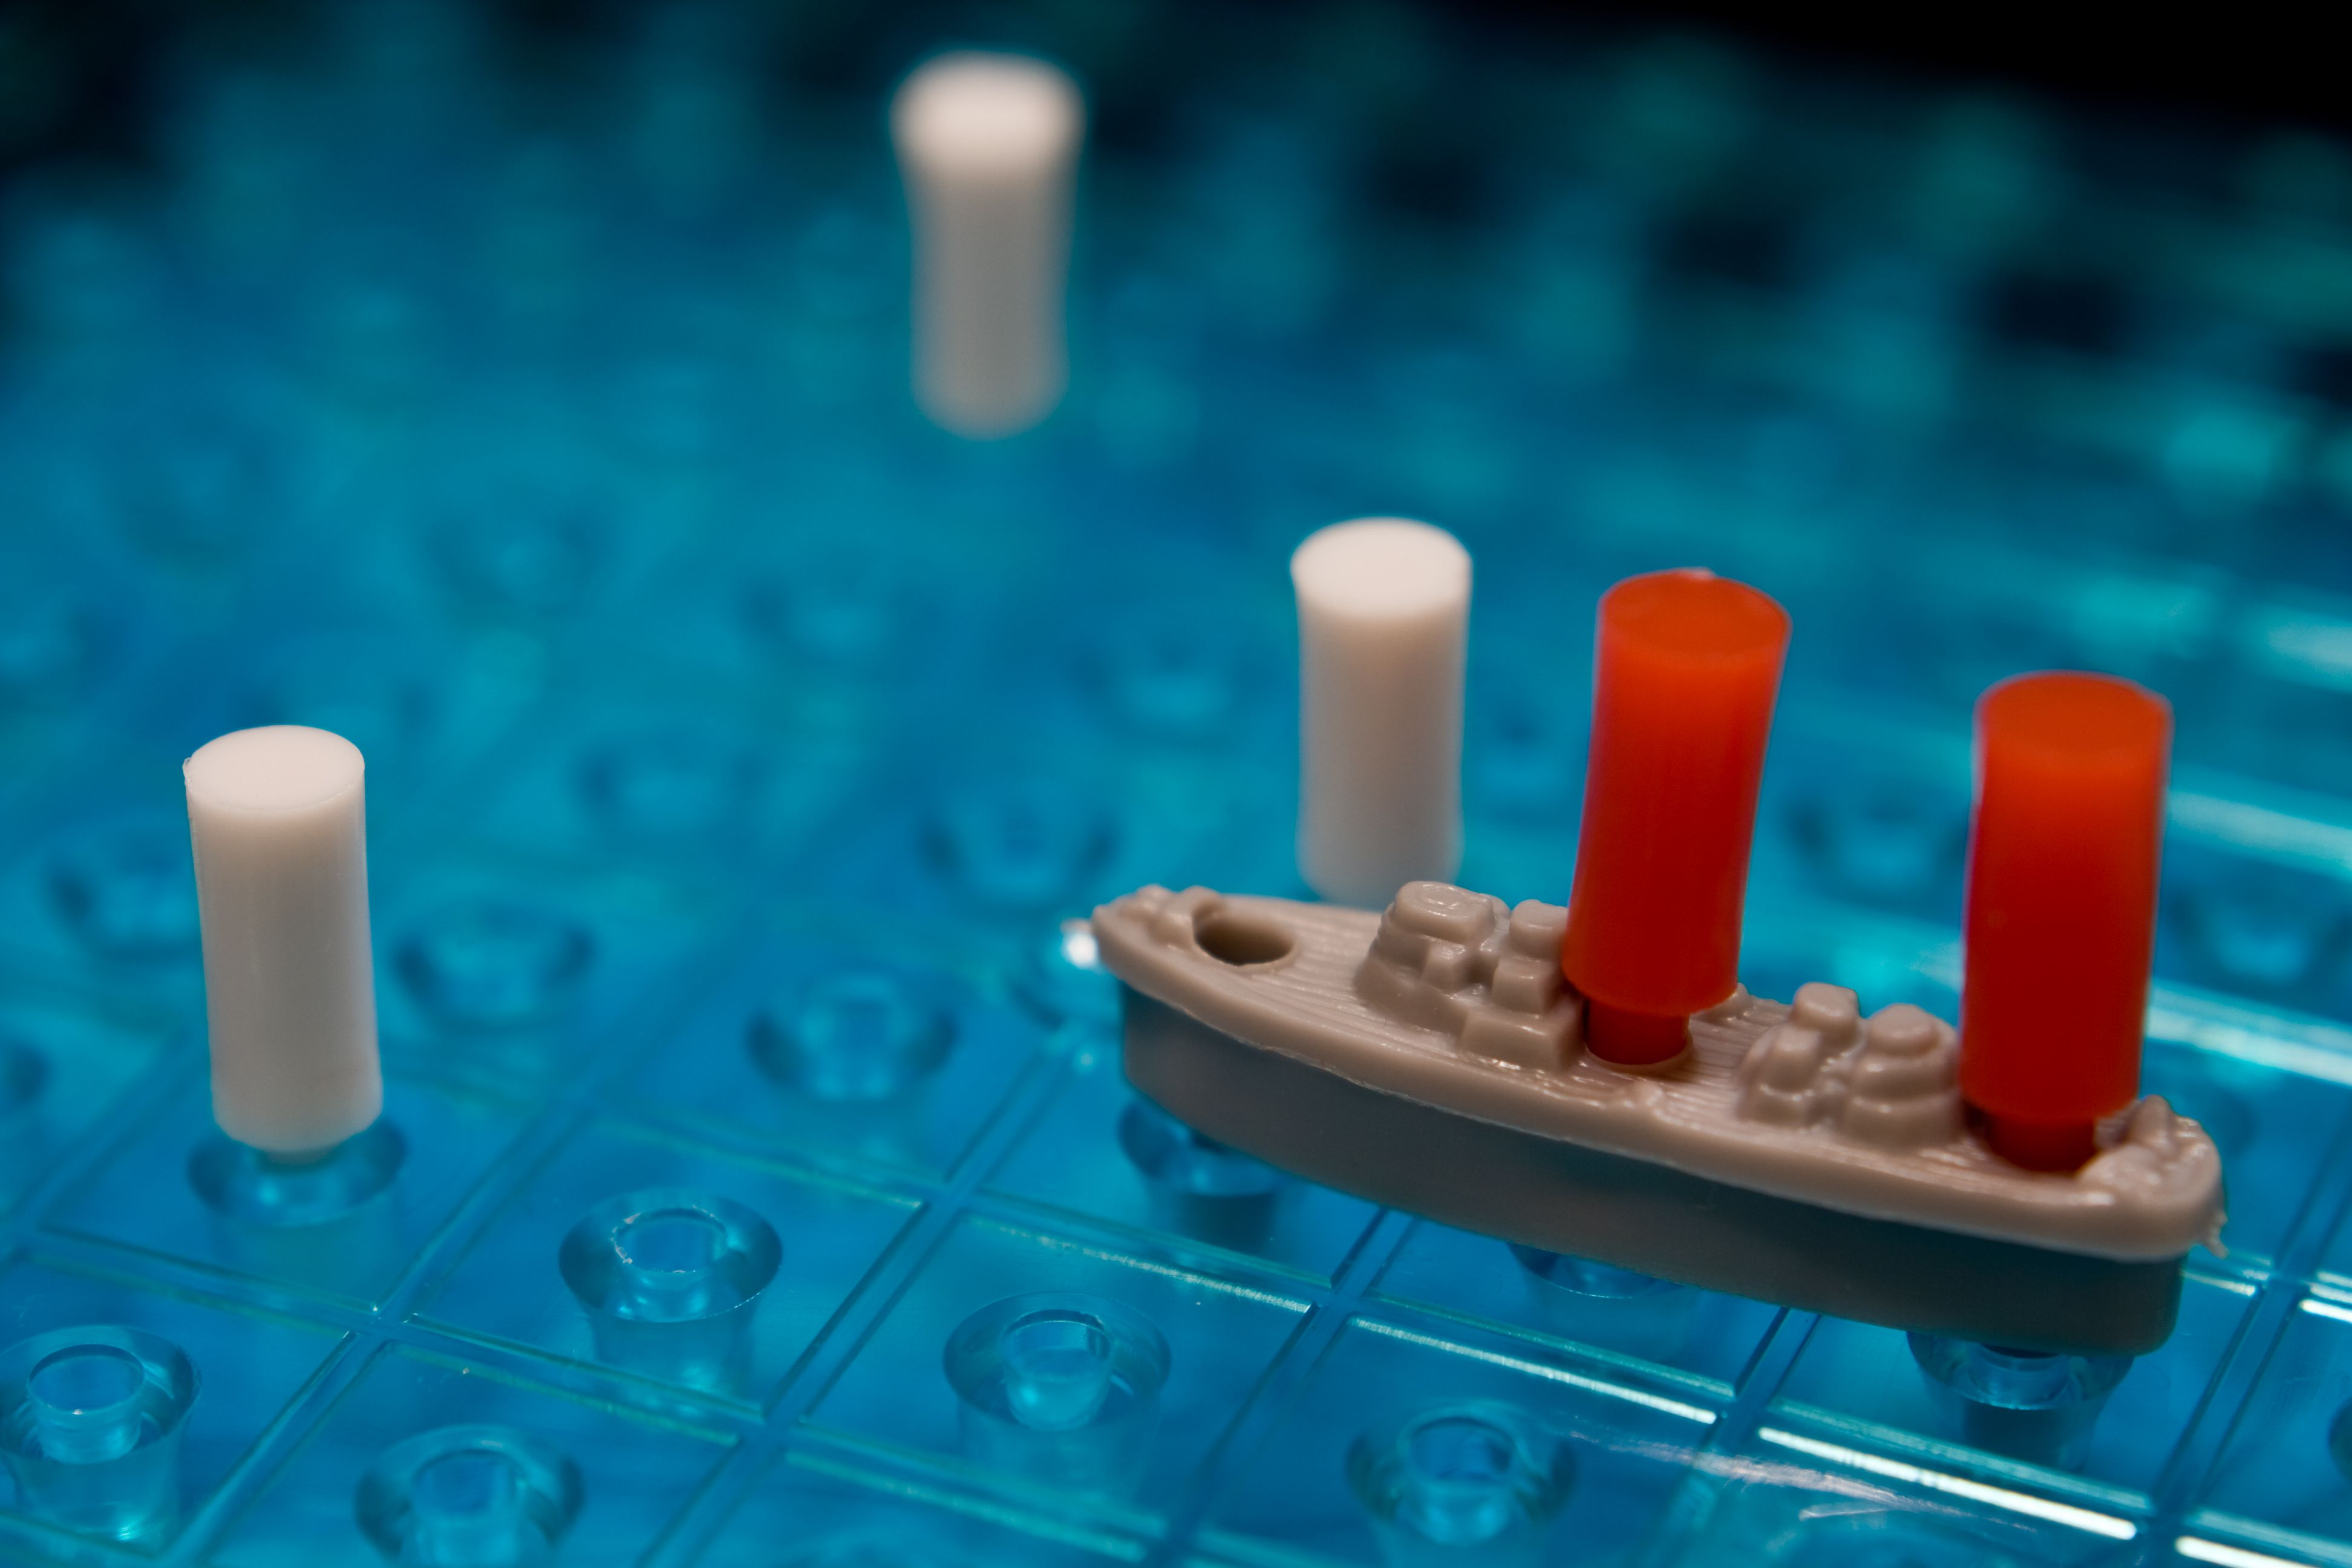 How To Win At Battleship